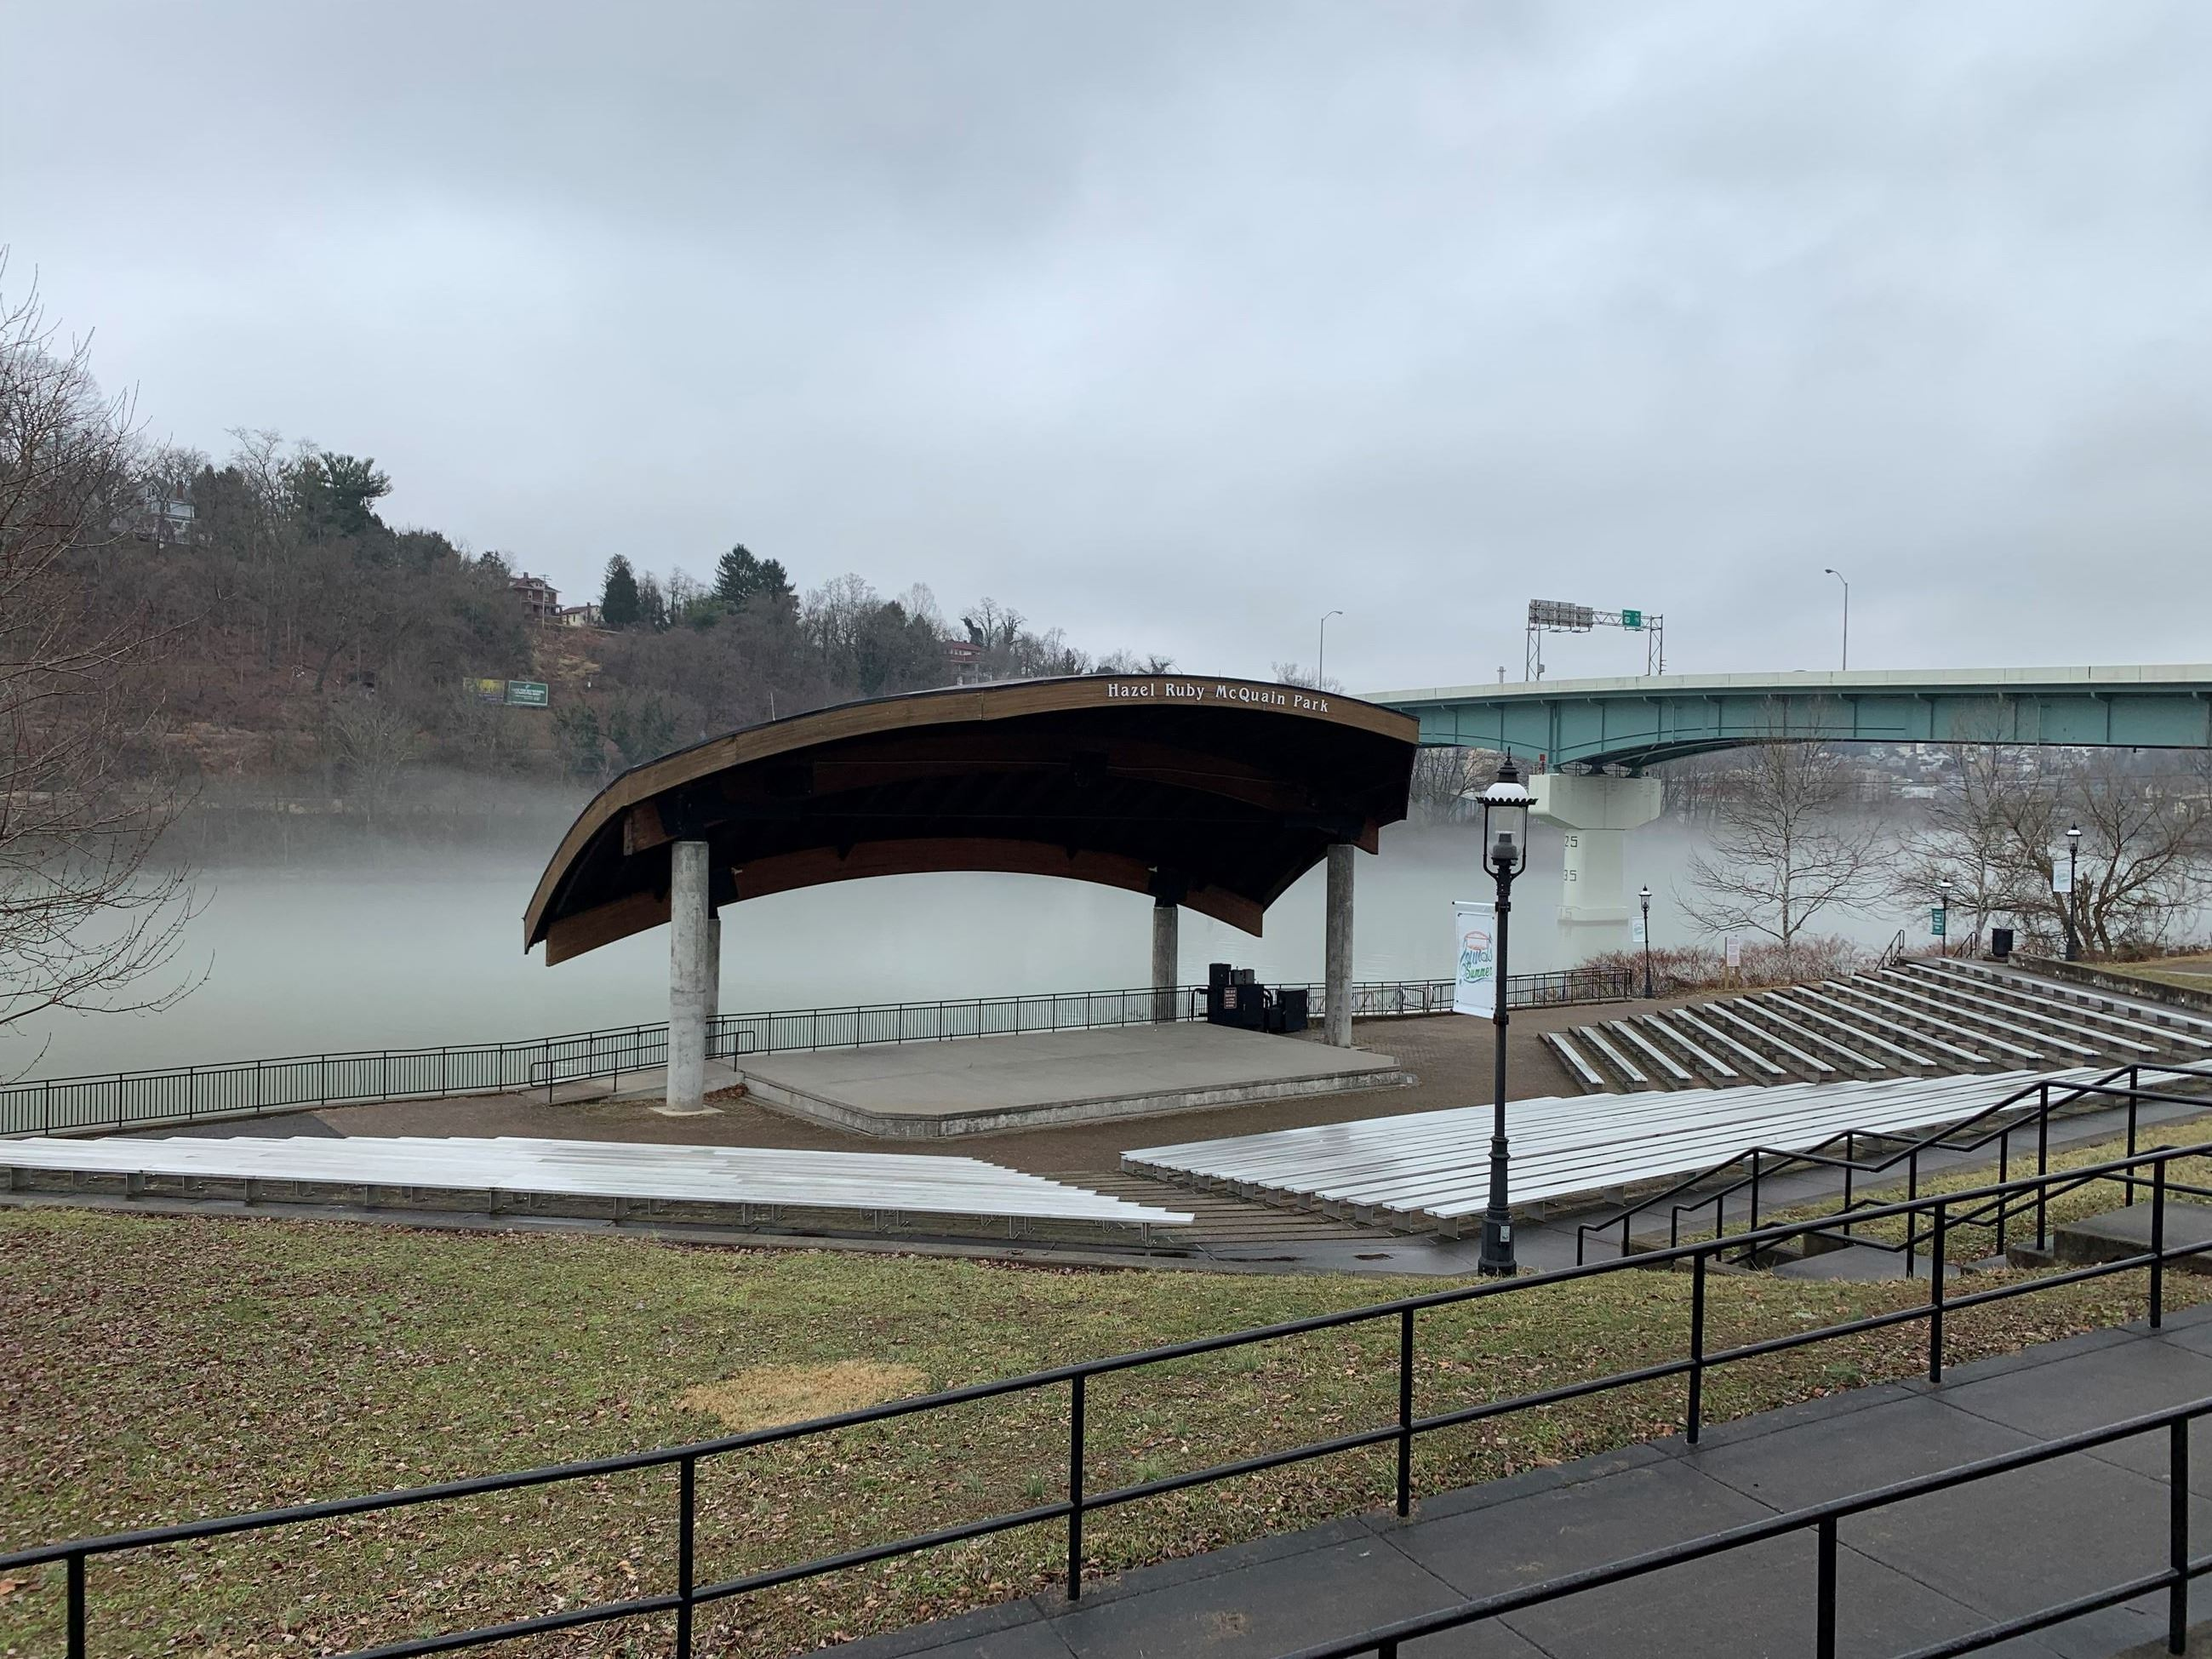 A picture of the Hazel Ruby McQuain Amphitheater and Riverfront Park